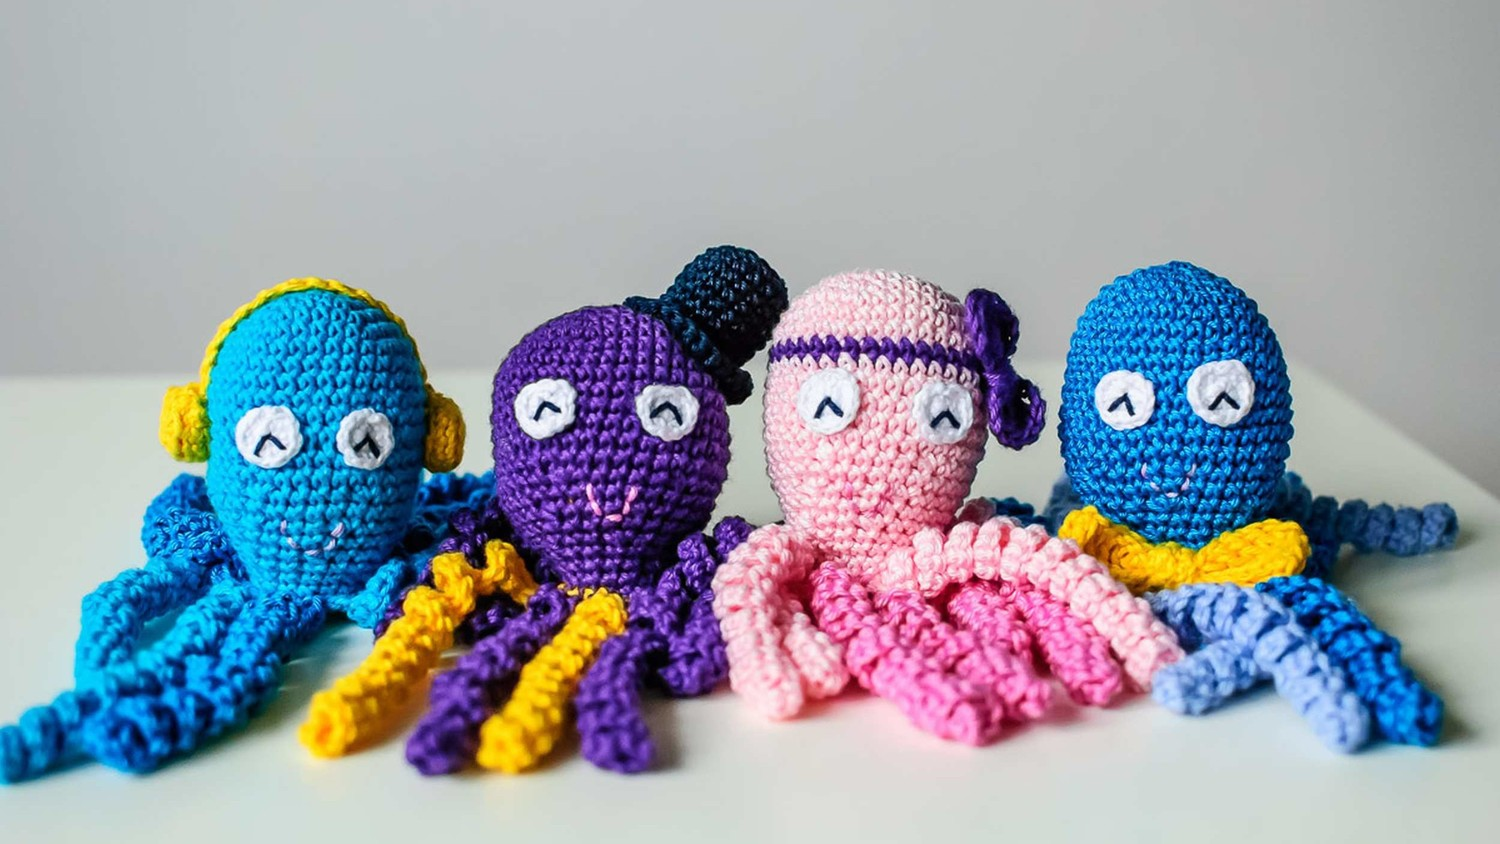 Free Amigurumi Patterns Octopus : You can crochet an octopus toy to help comfort premature babies